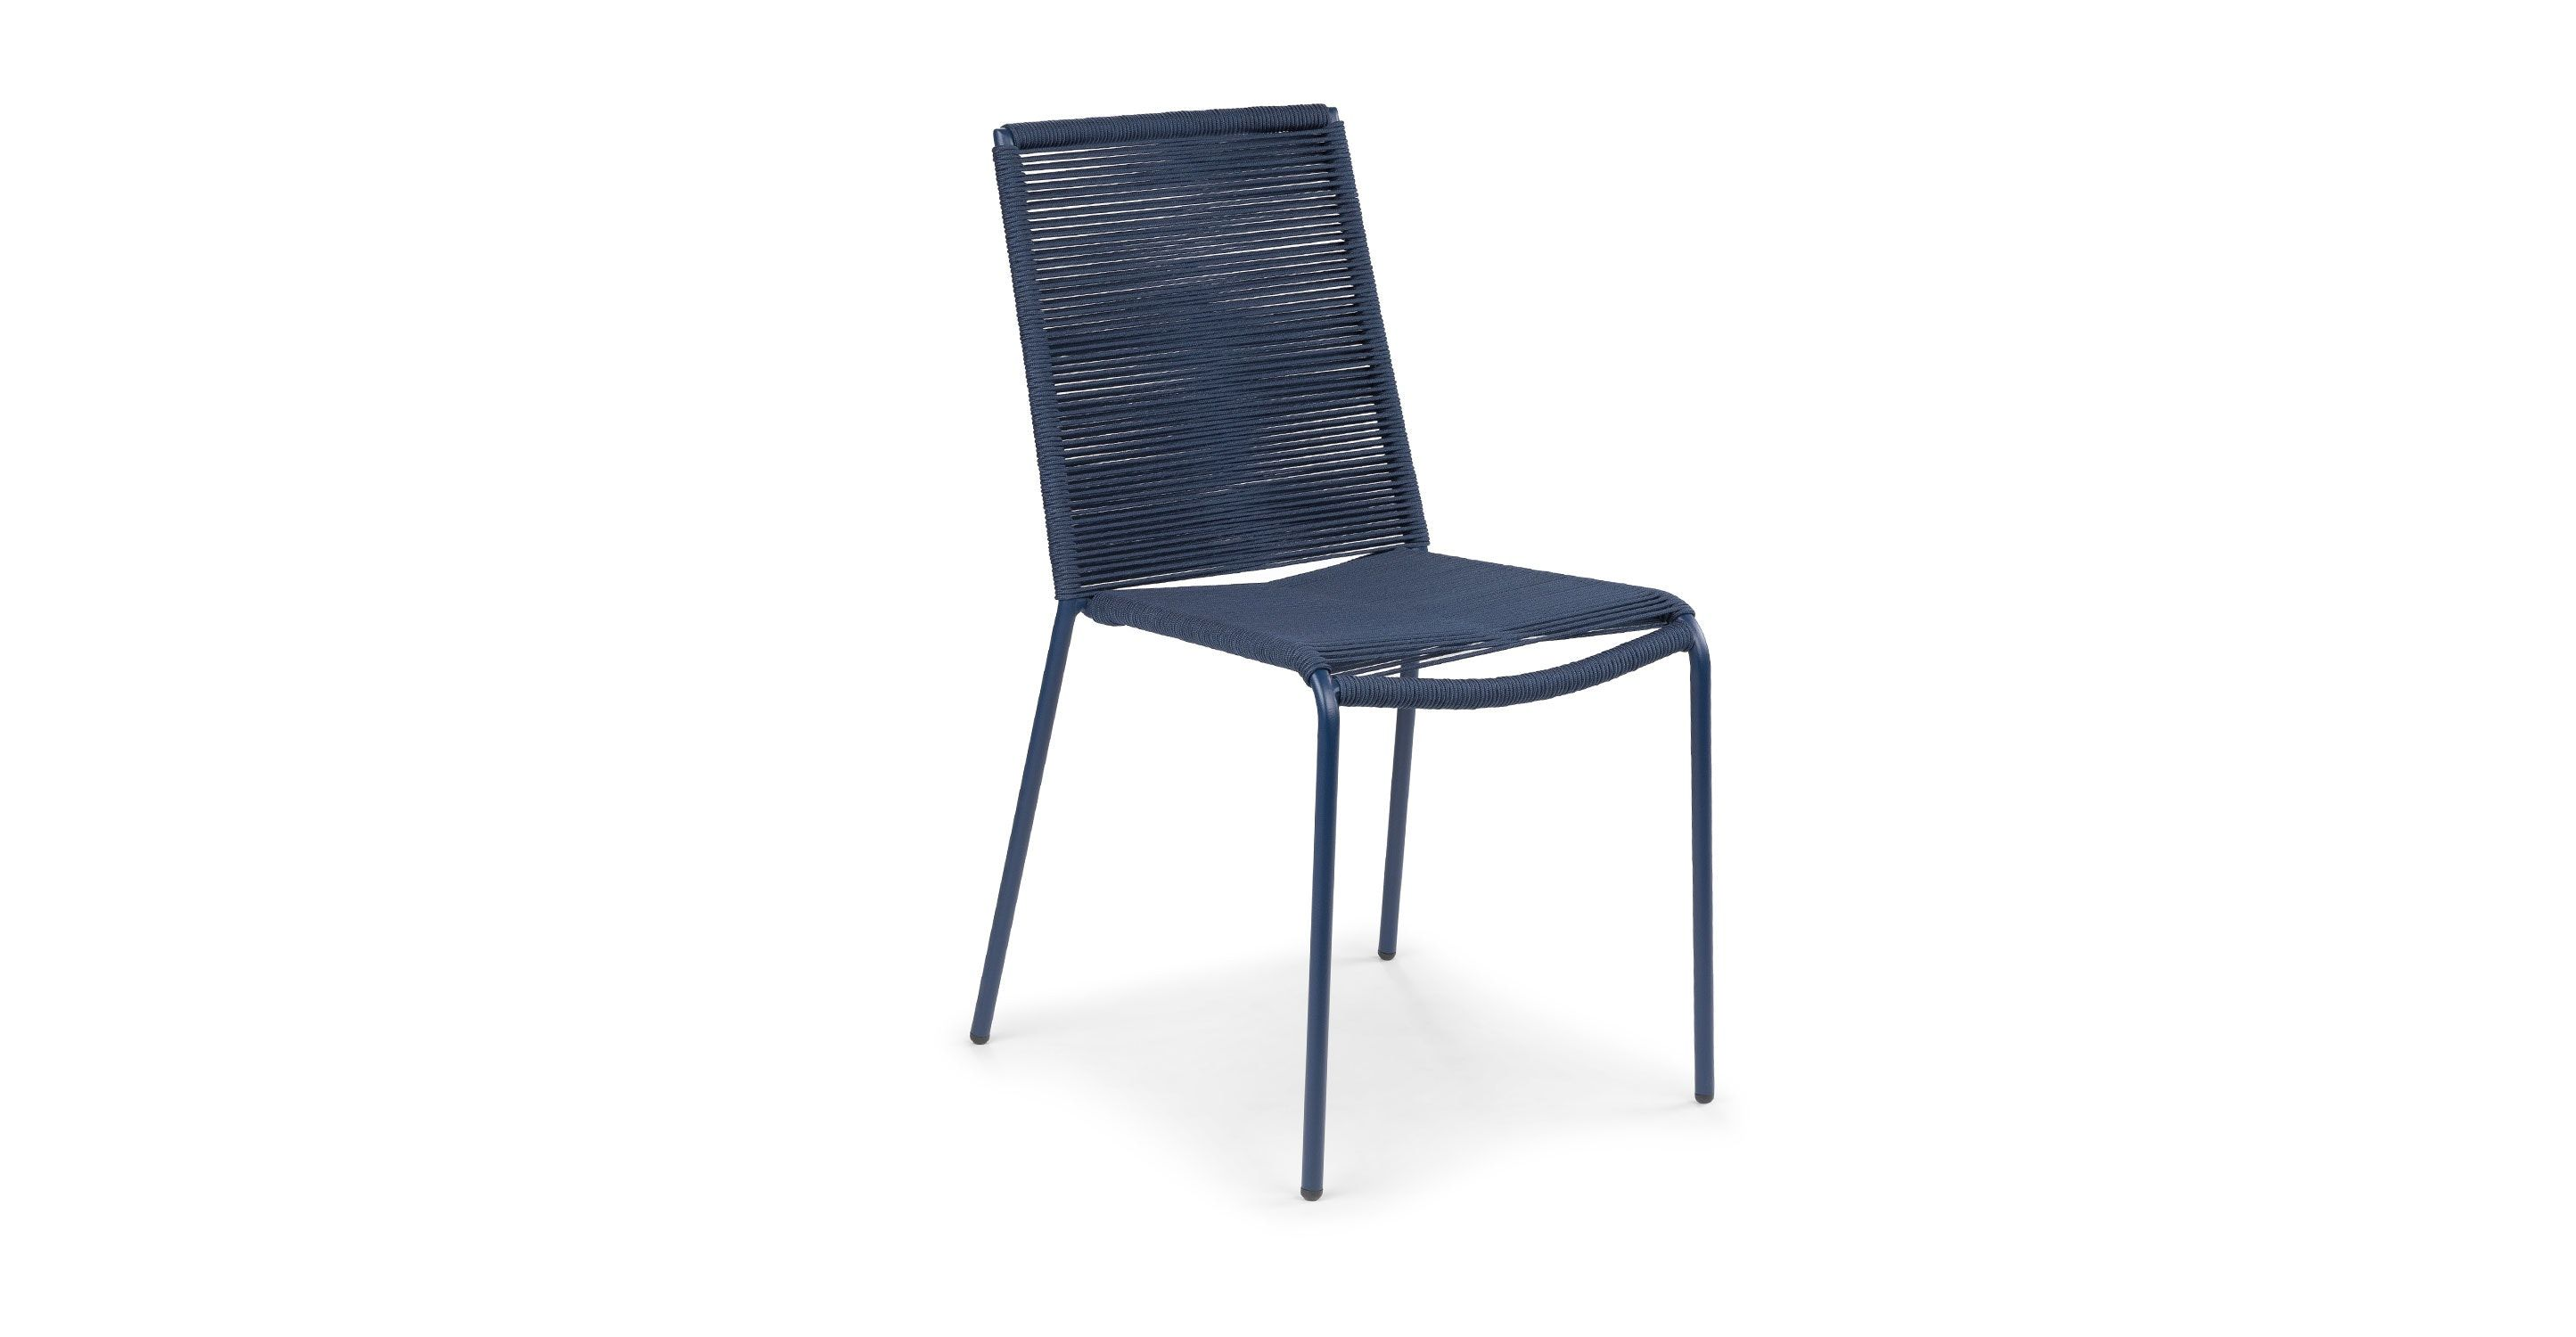 Zina Indigo Blue Dining Chair Black Dining Chairs Dining Chairs